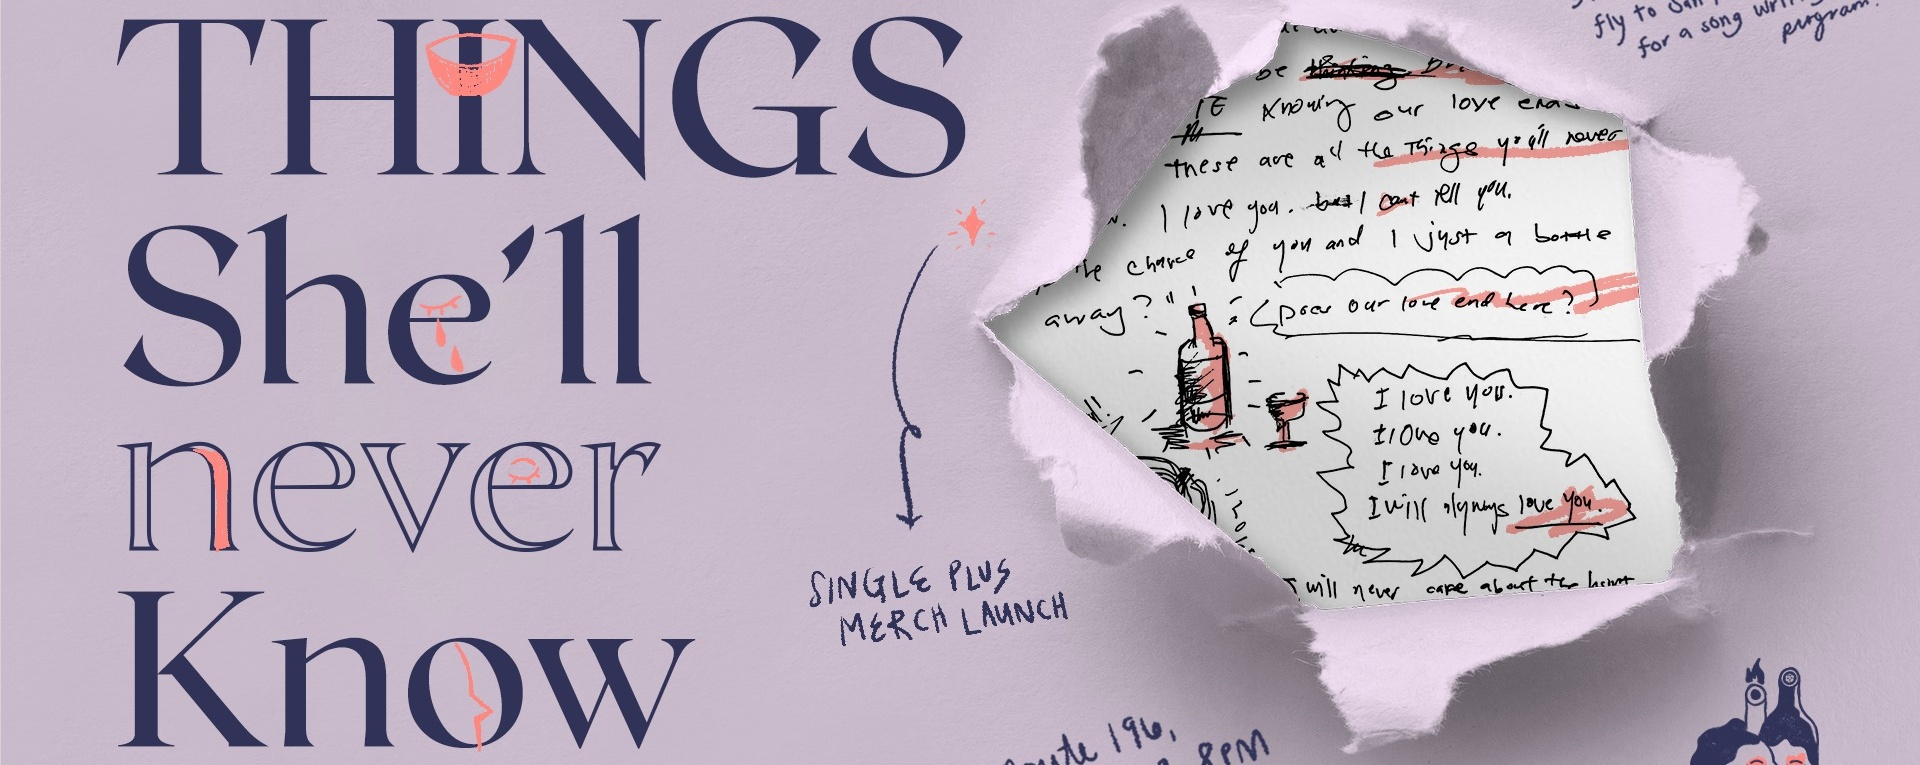 Things She'll Never Know: Single and Merch Launch